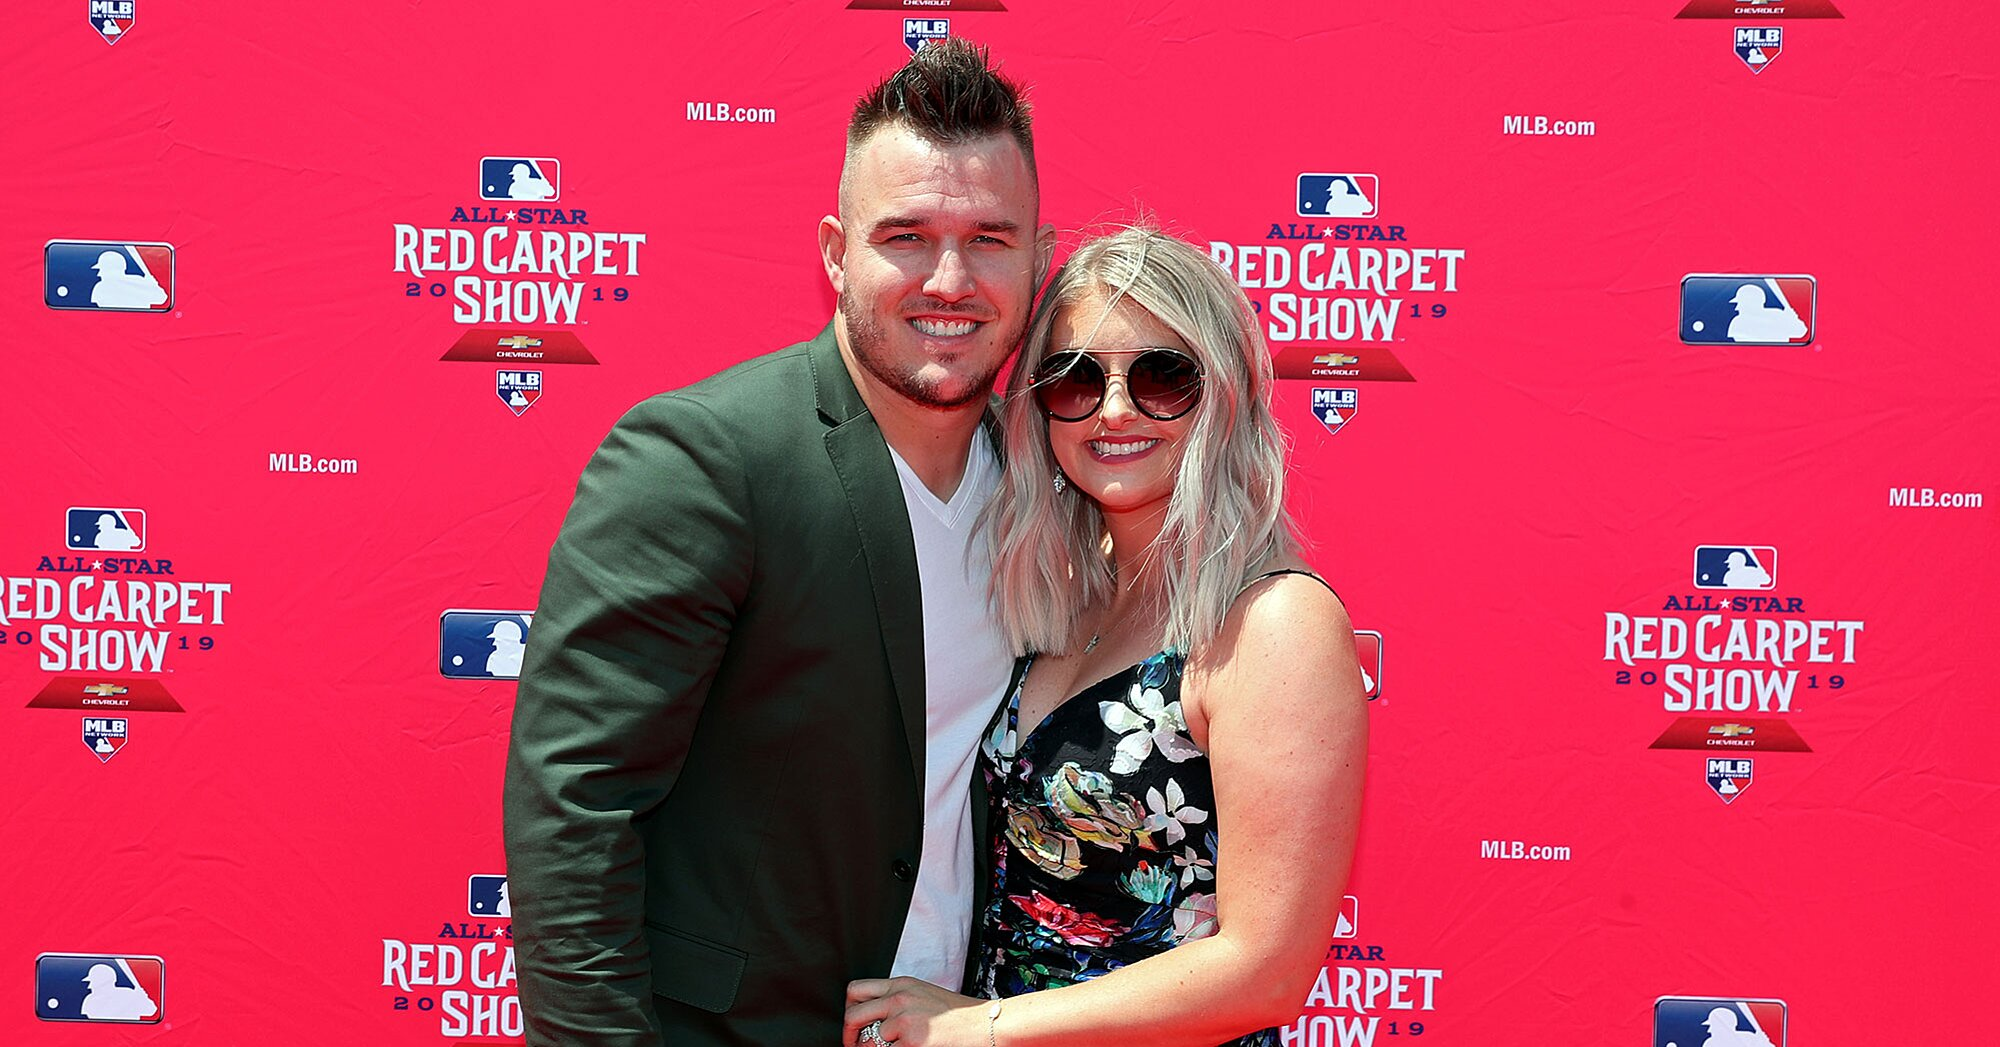 MLB Star Mike Trout and Wife Jessica Welcome Their First Child: 'Our Greatest Gift from Above'